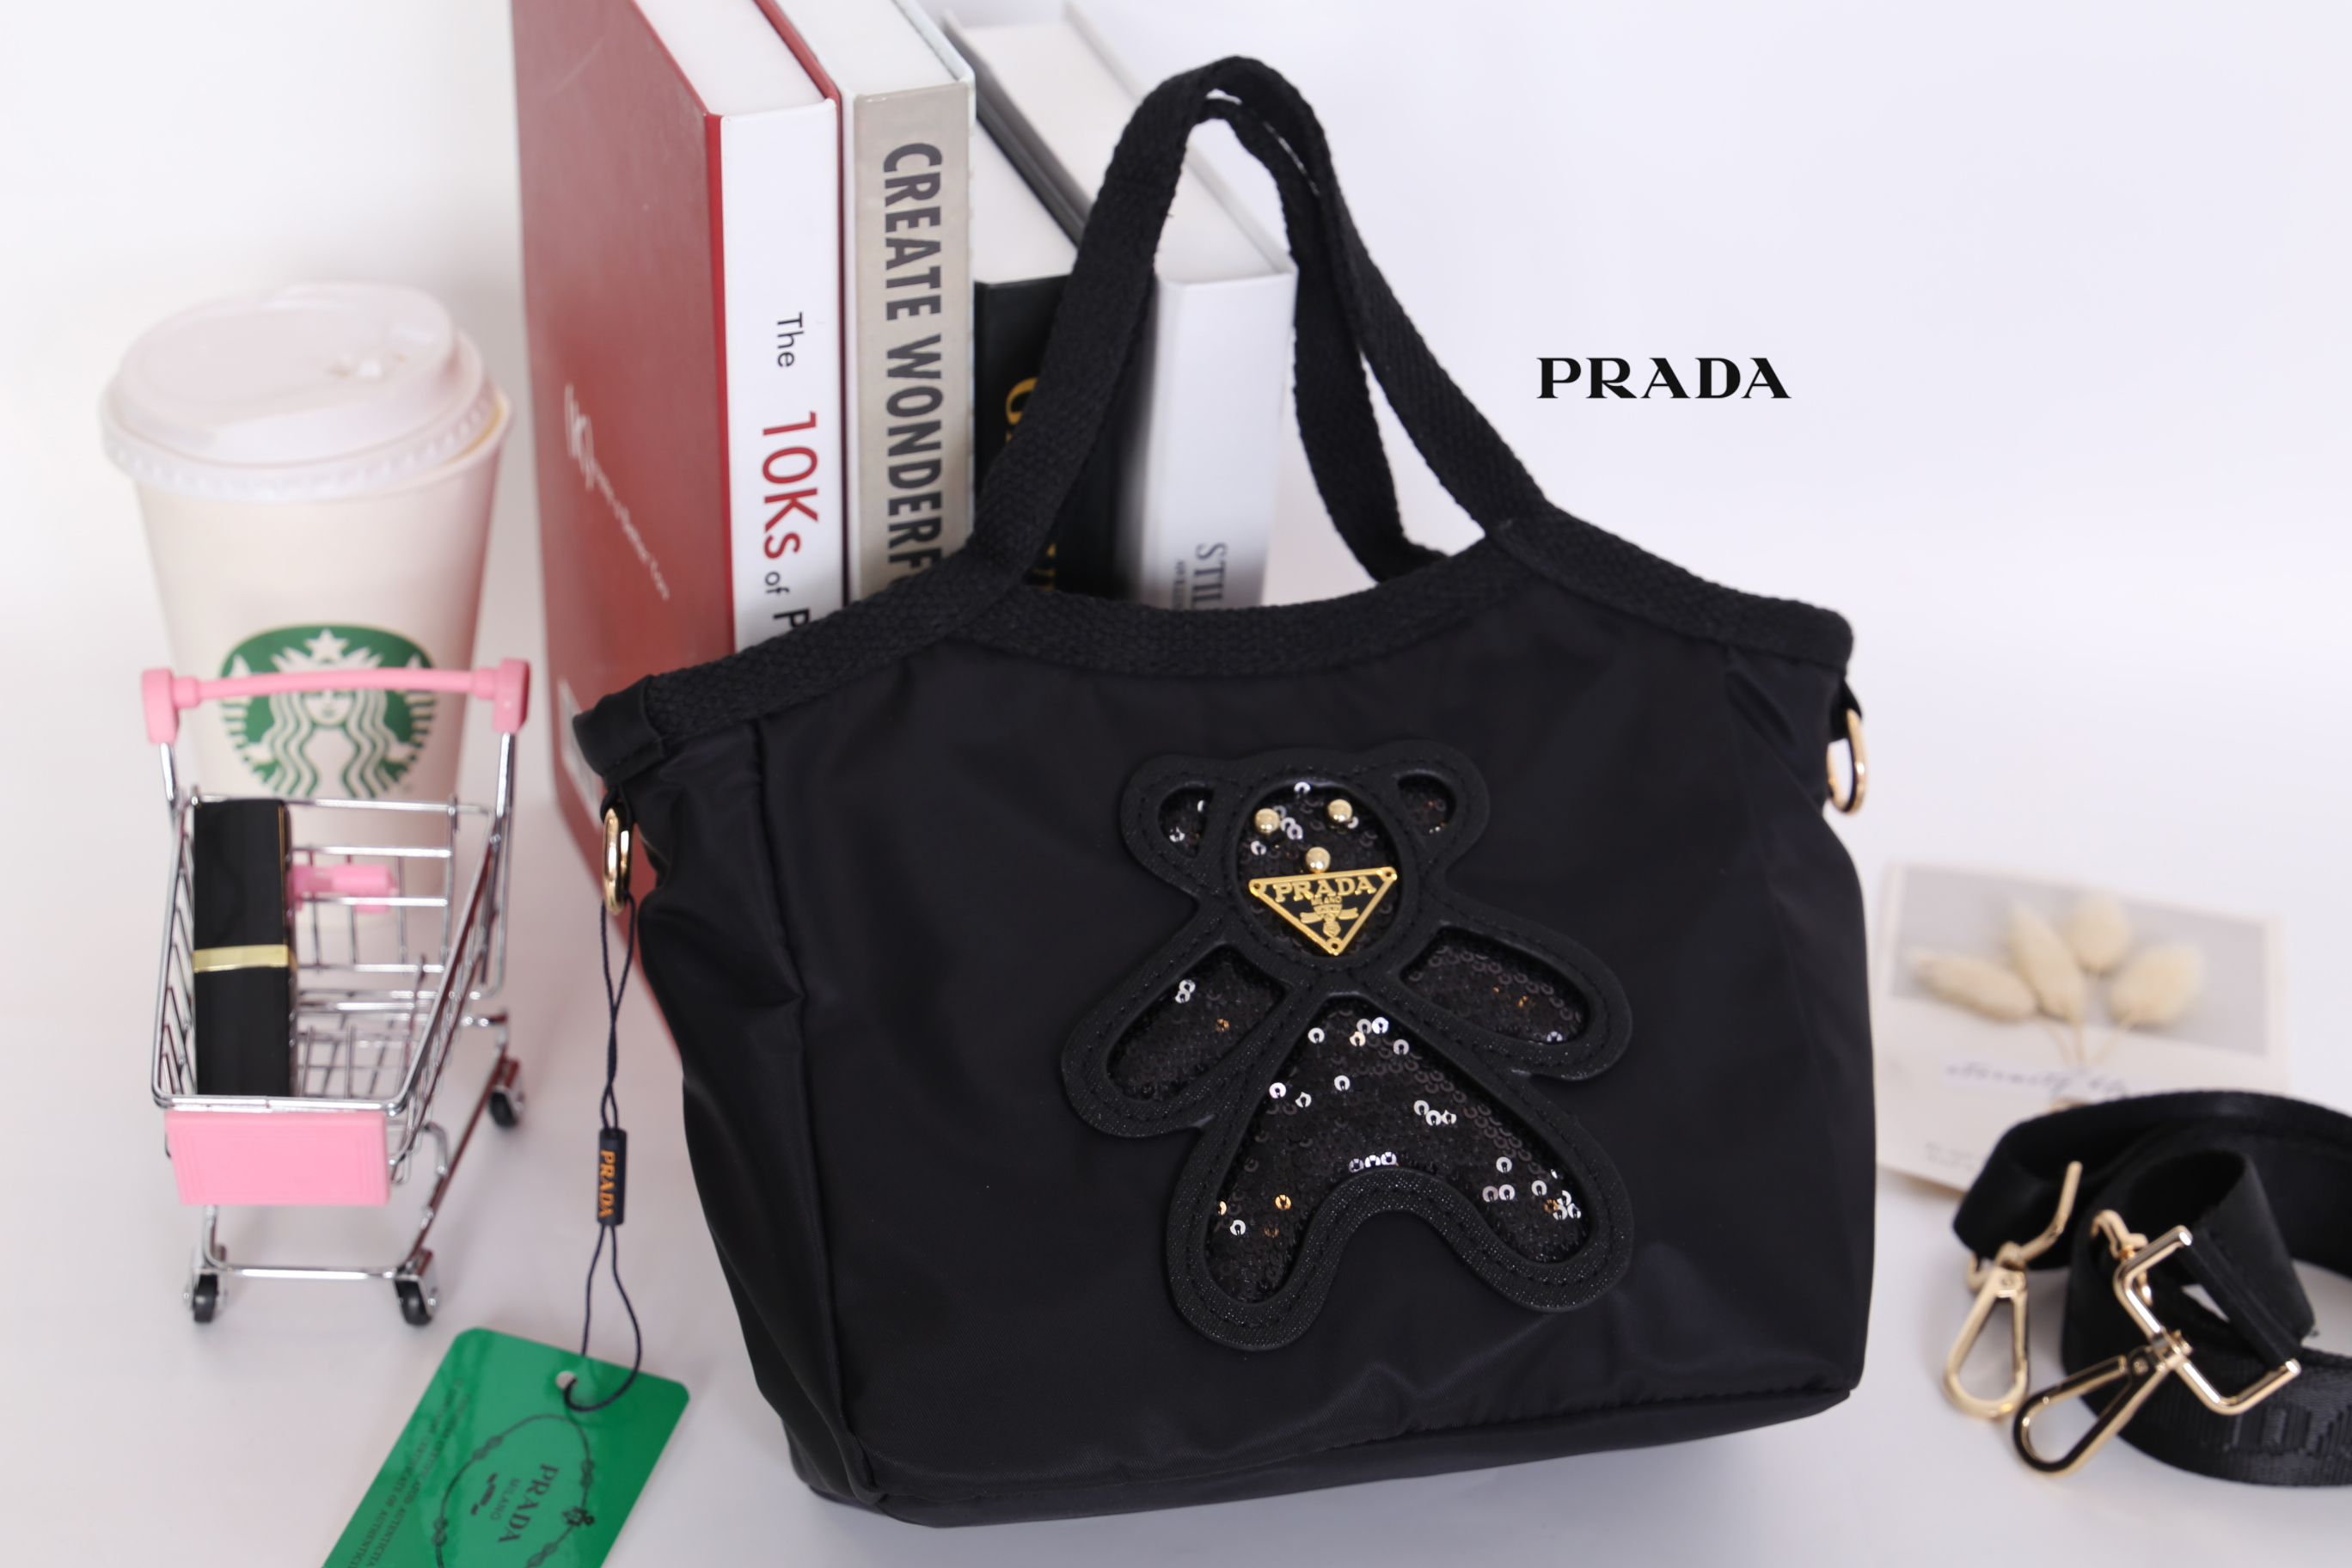 8665ba3d6f3e Prada Nylon Teddy bear bag - make happy office : Inspired by LnwShop.com